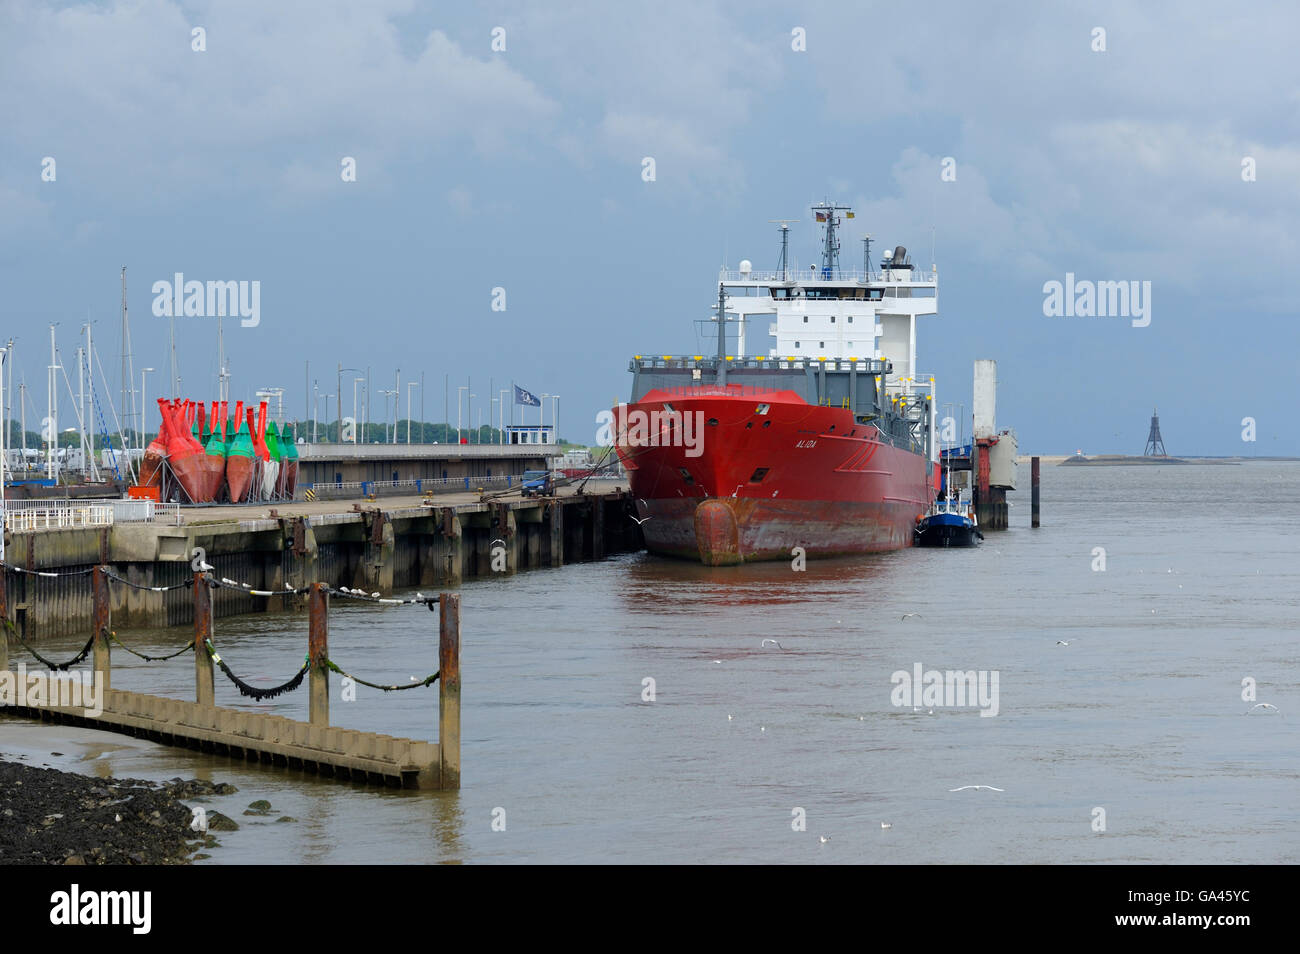 Freighter in Harbour, Cuxhaven, Germany - Stock Image